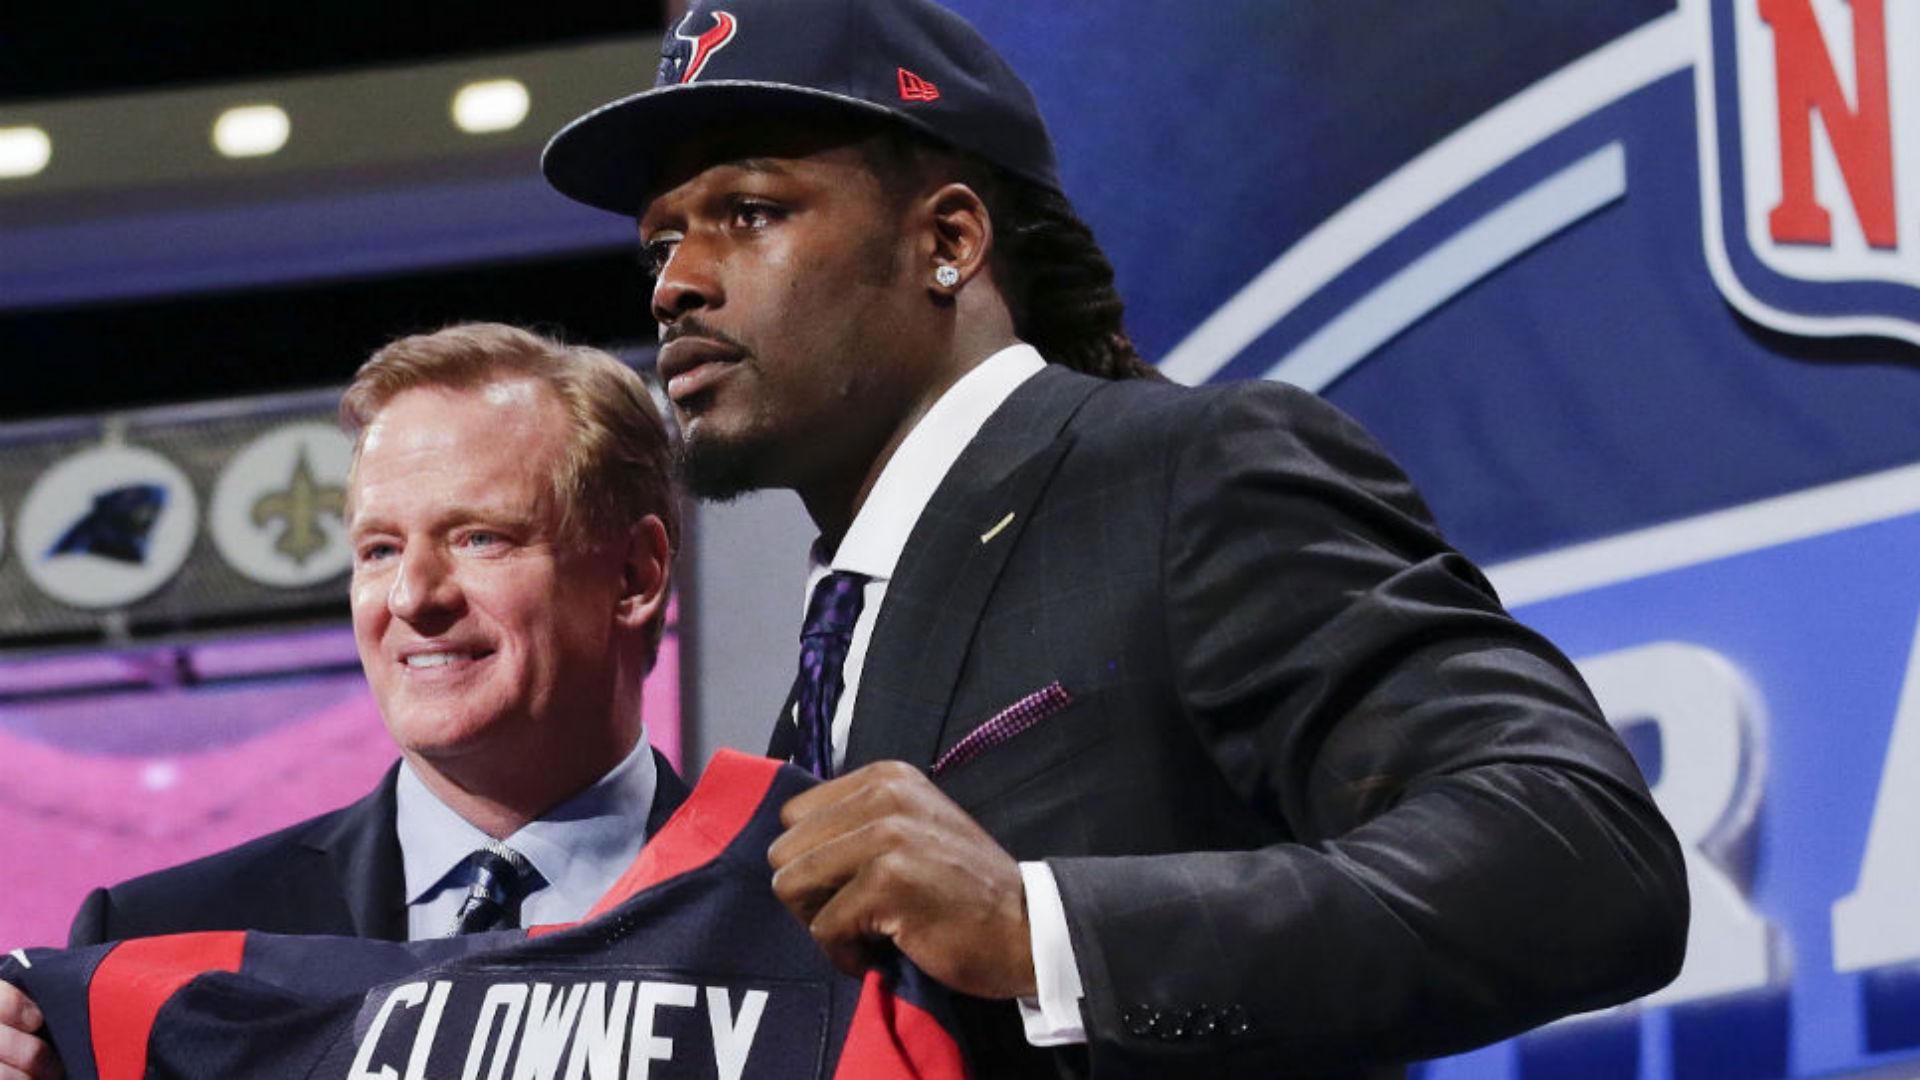 2014 NFL Draft -- First round recap from Clowney to Bridgewater